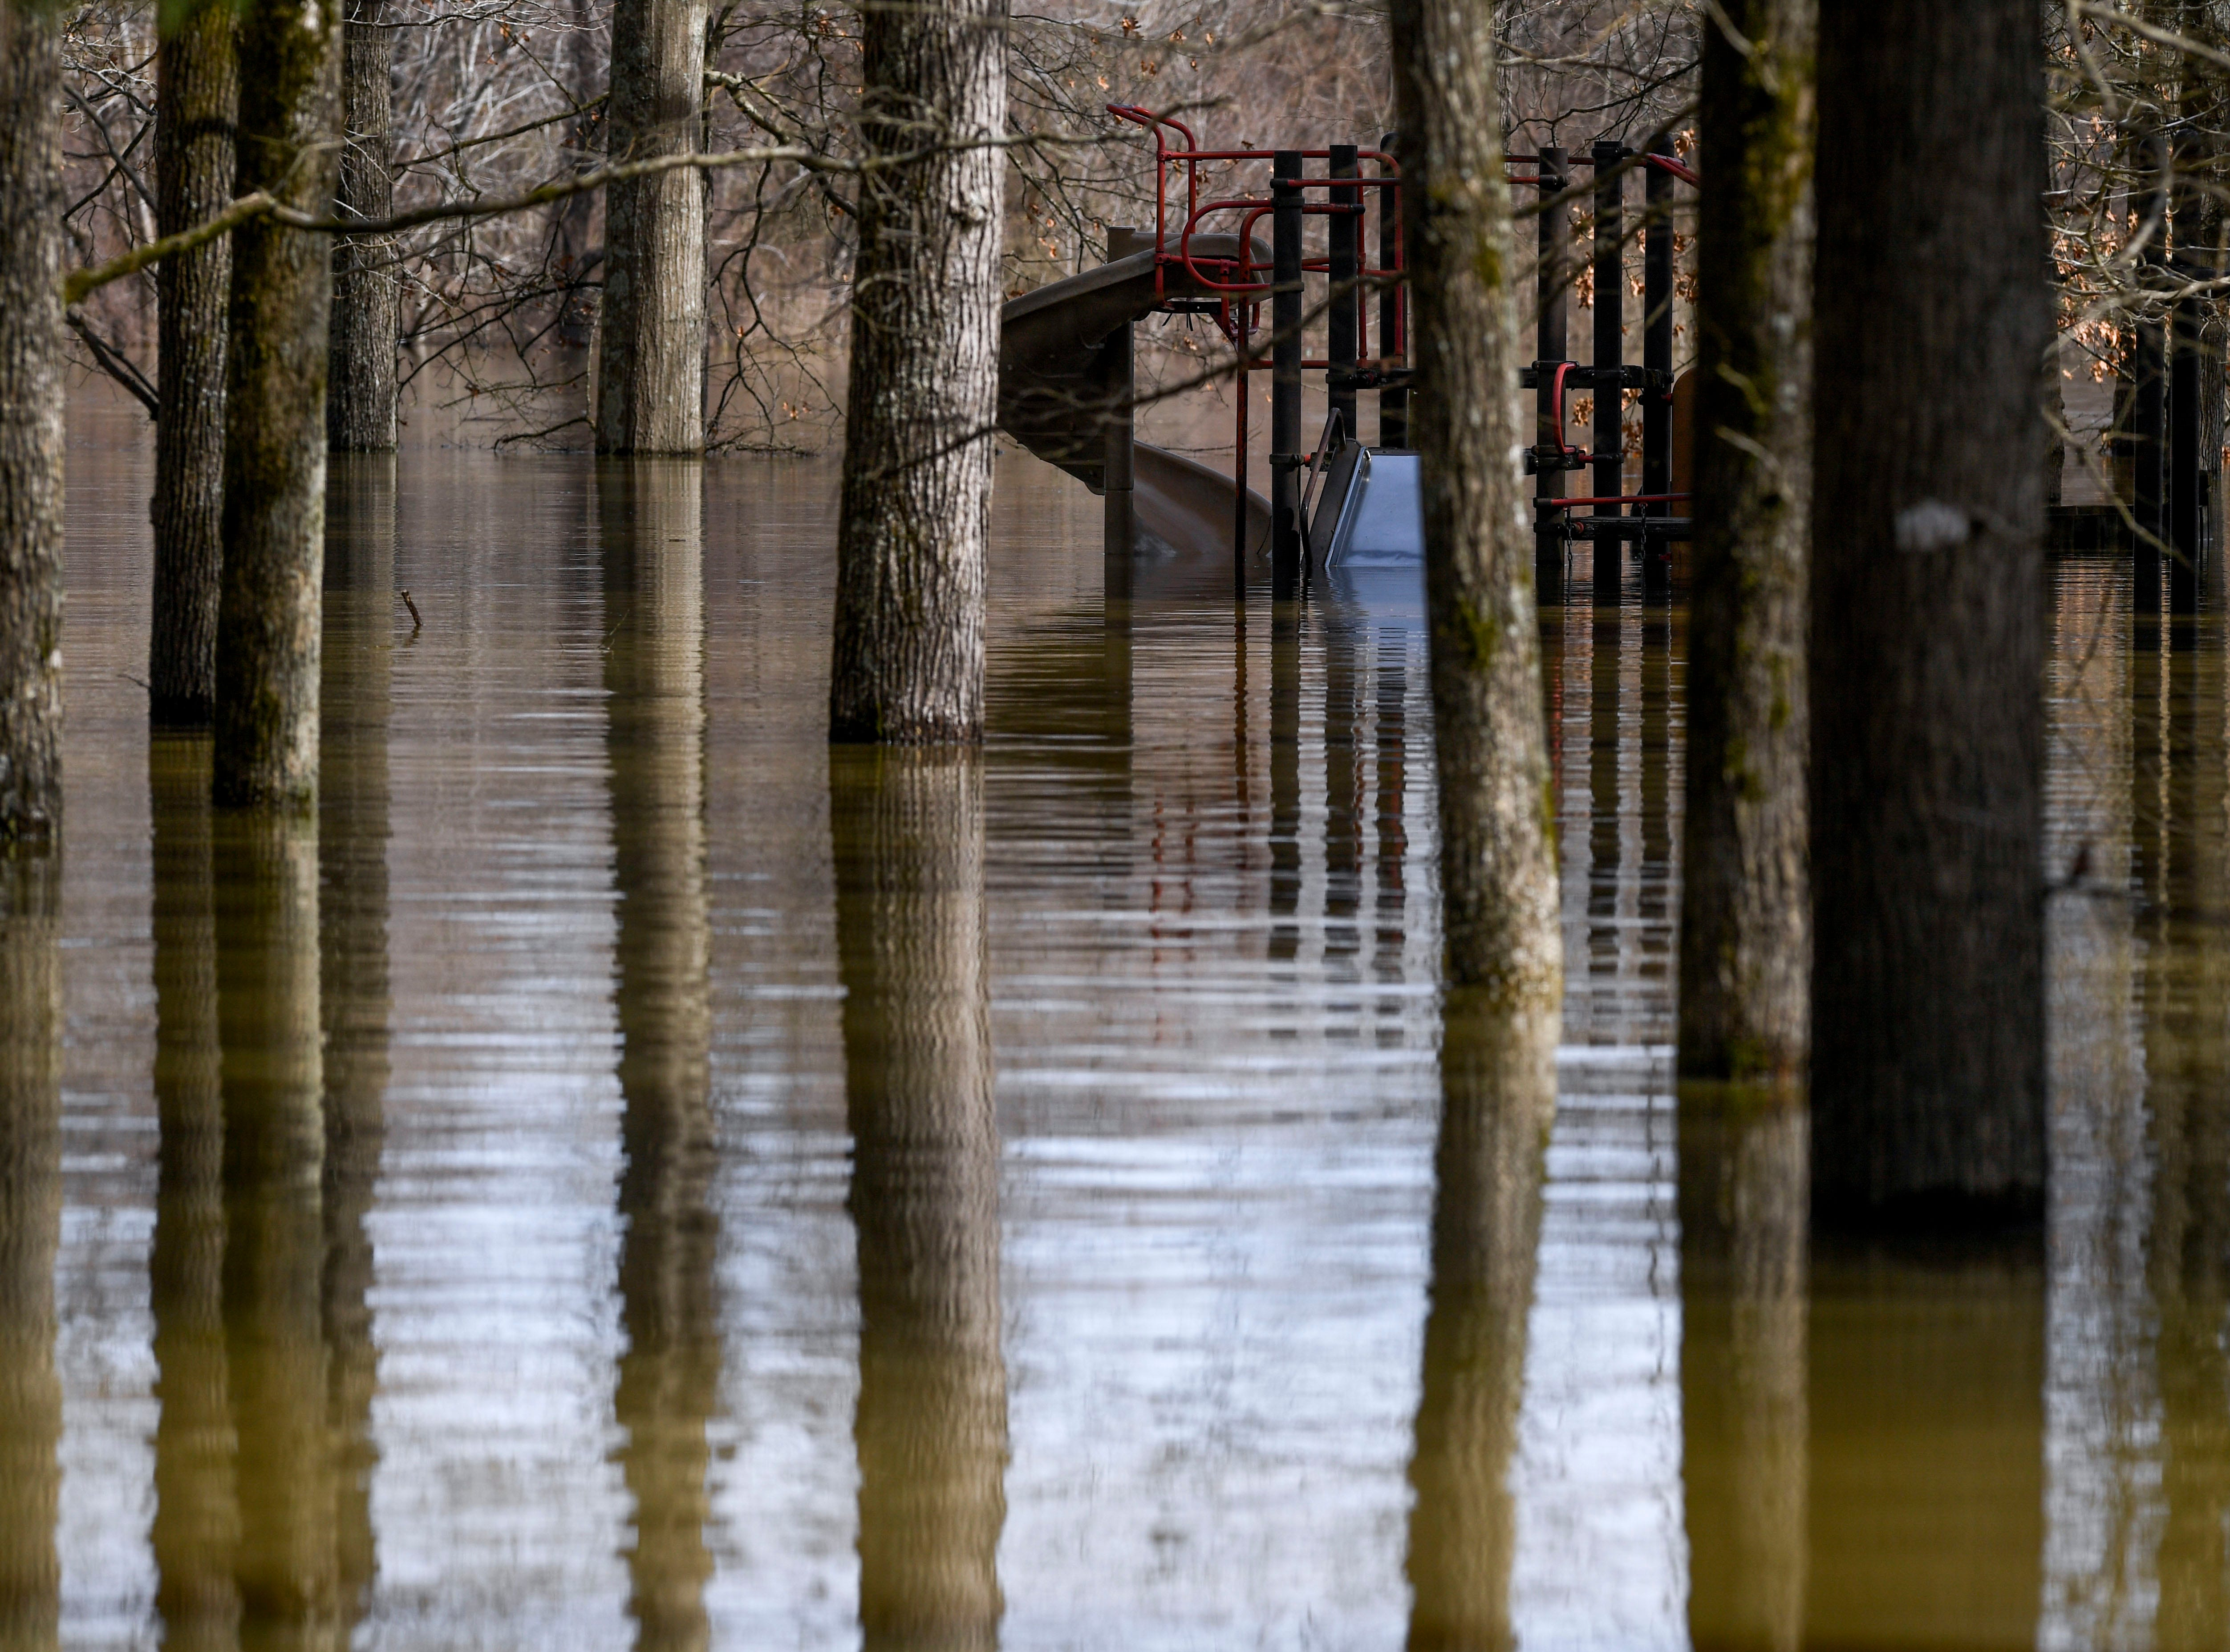 A slide can be seen in the distance and overcome by flood waters at Beech Bend Park, in Decaturville, Tenn., on Monday, Feb. 25, 2019.